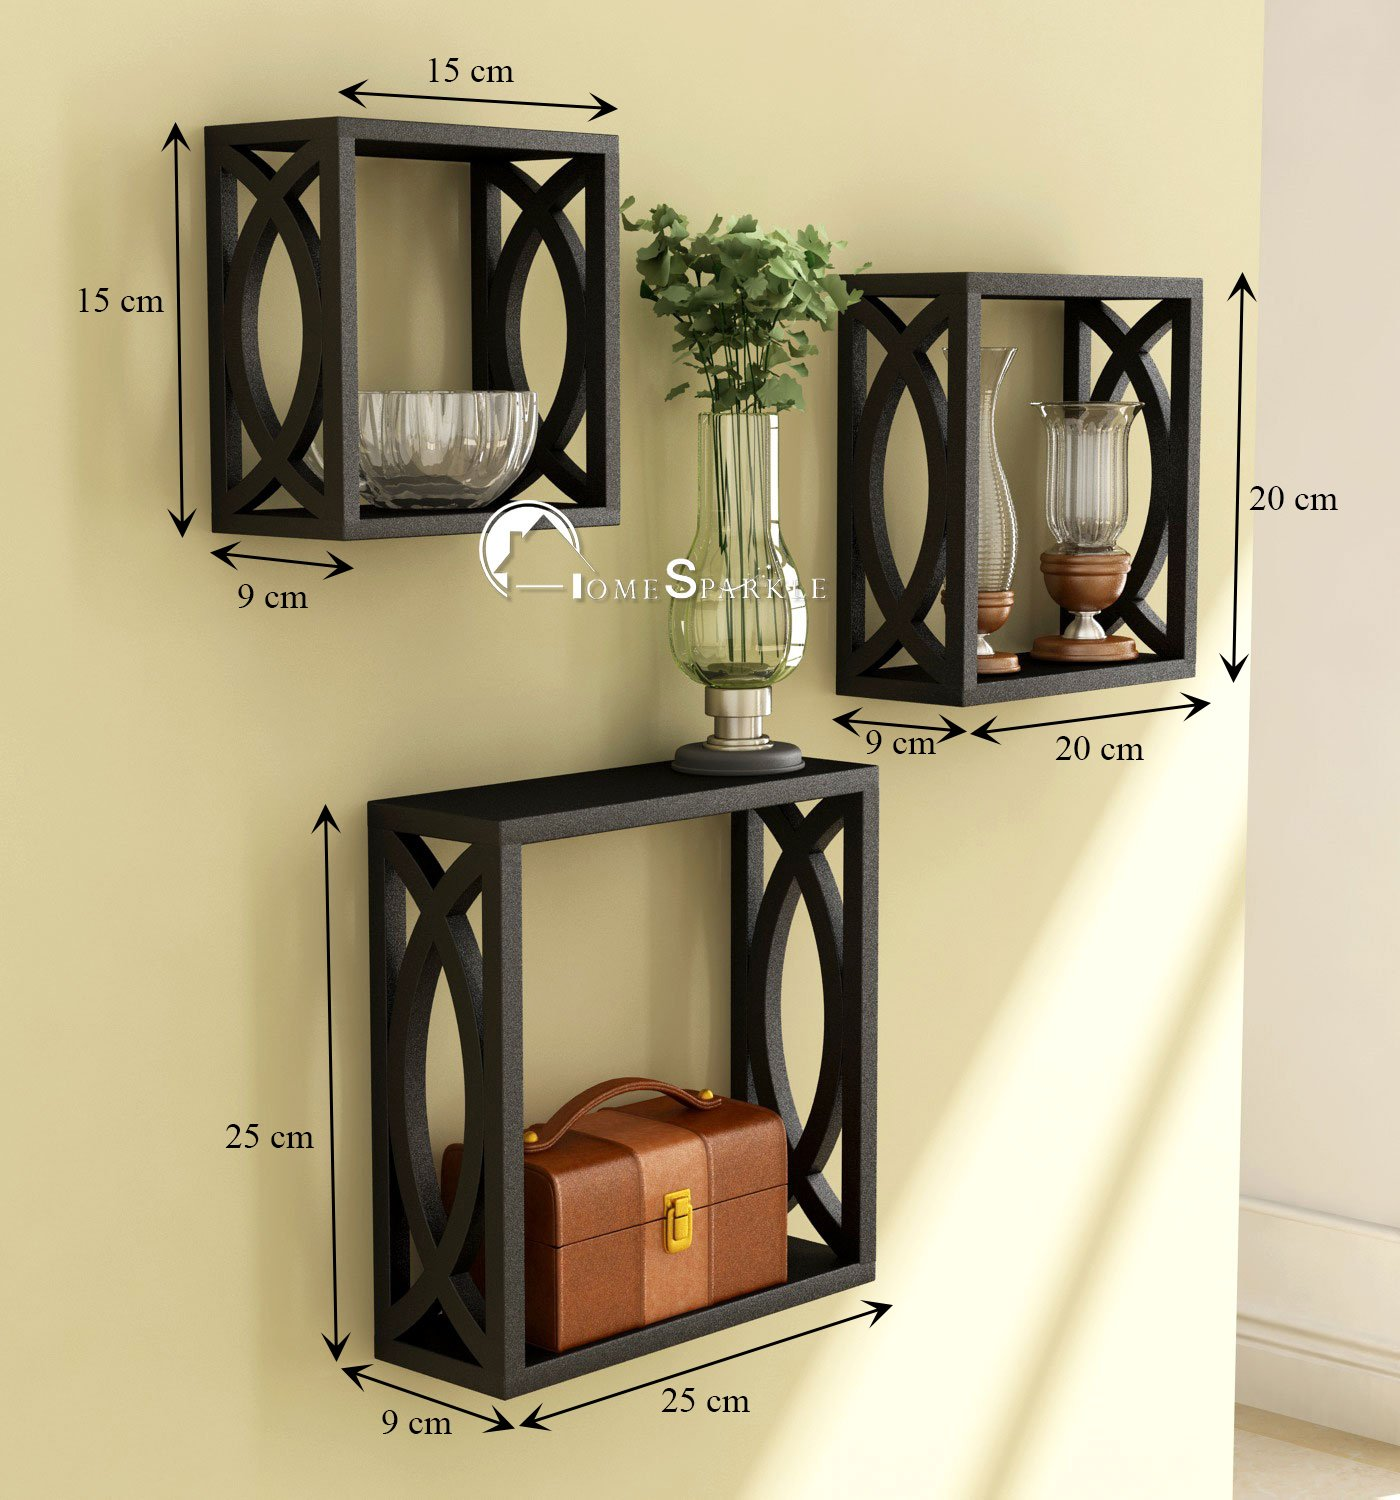 Home Sparkle Wooden Wall Shelf | Cube Design Wall Mounted ...